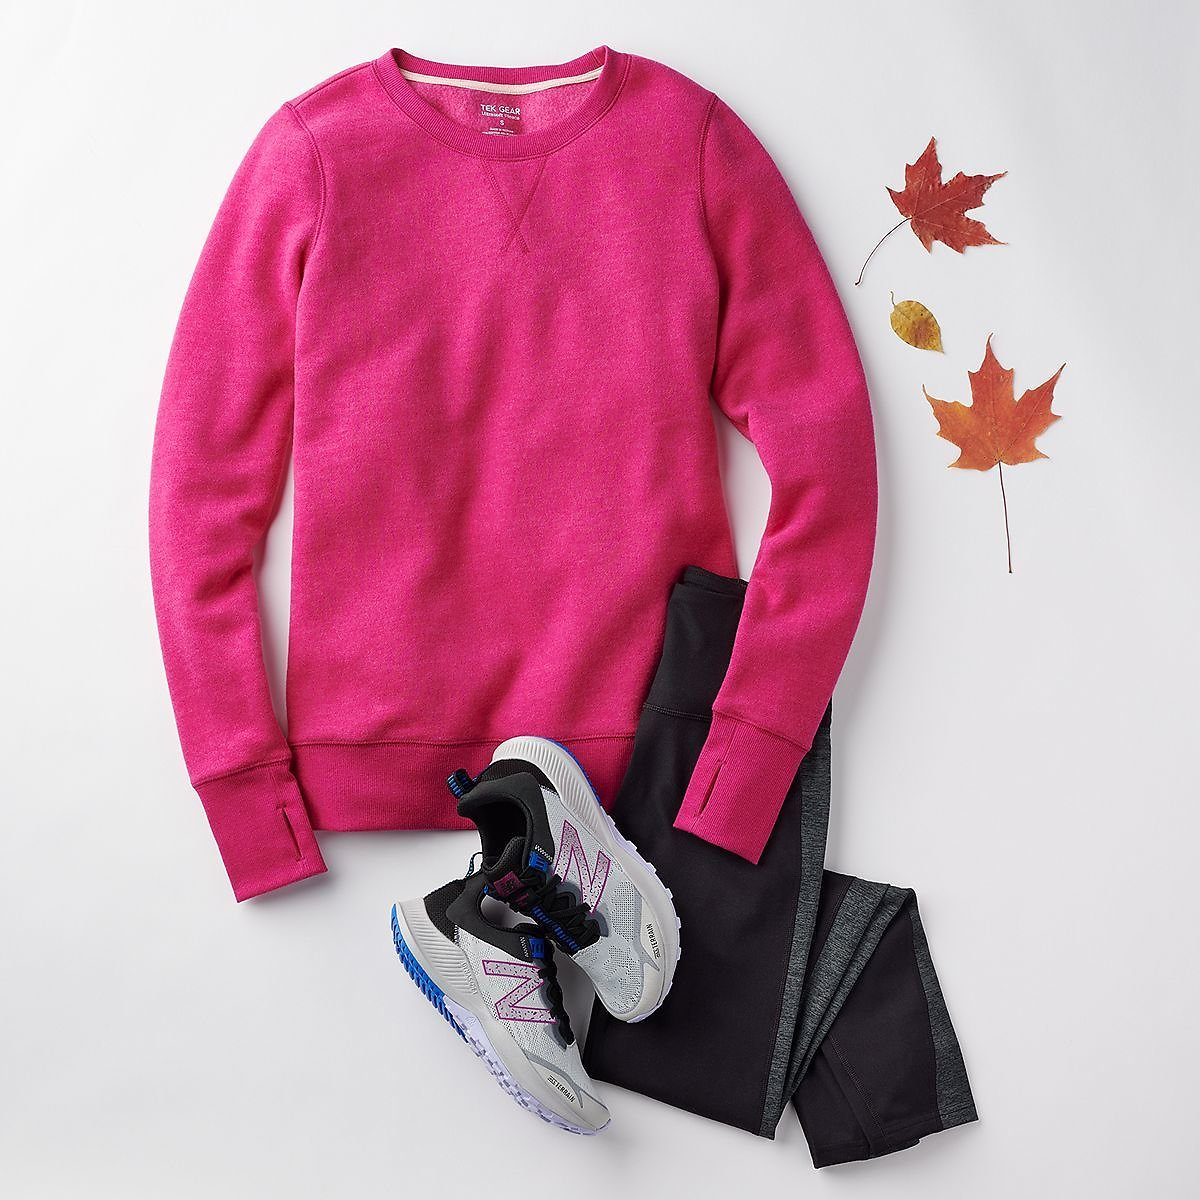 Up to 85% Off Clearance Activewear + Extra 15-30% Off